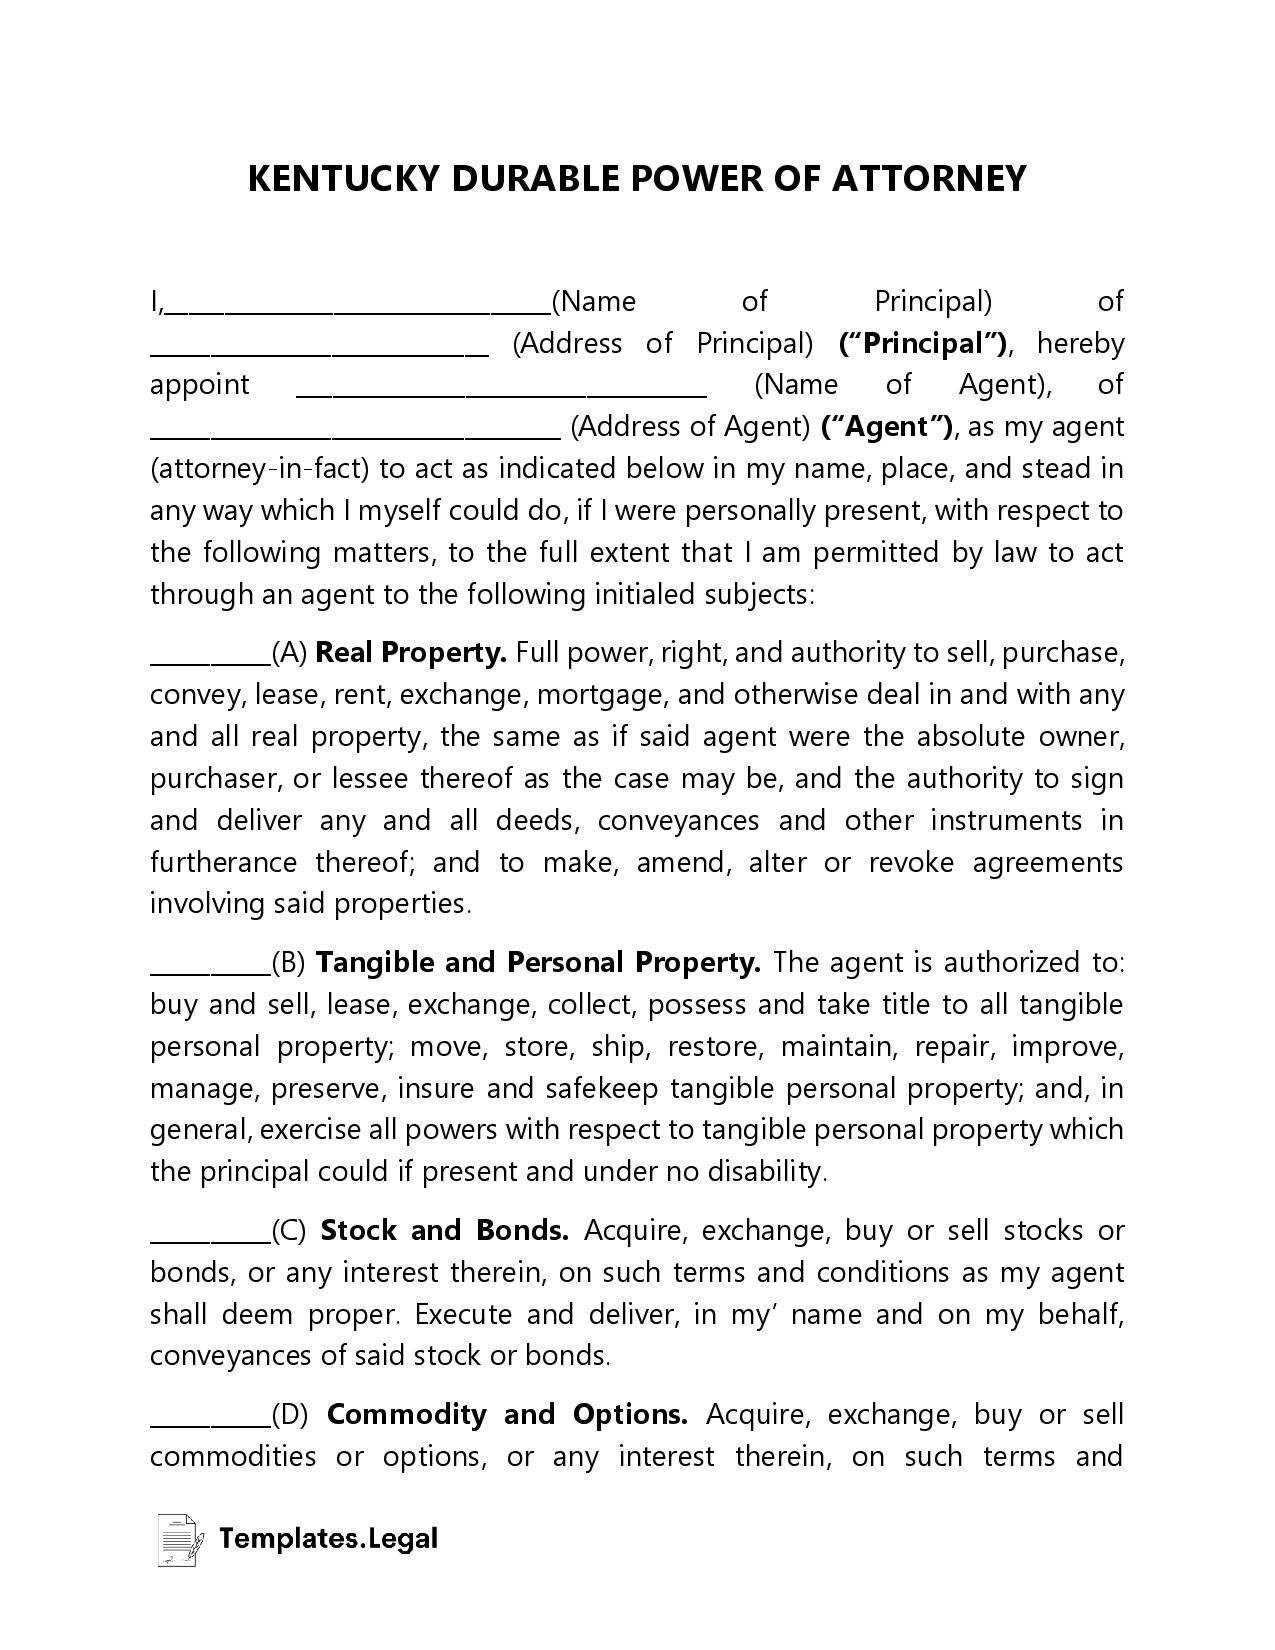 Kentucky Durable Power of Attorney - Templates.Legal